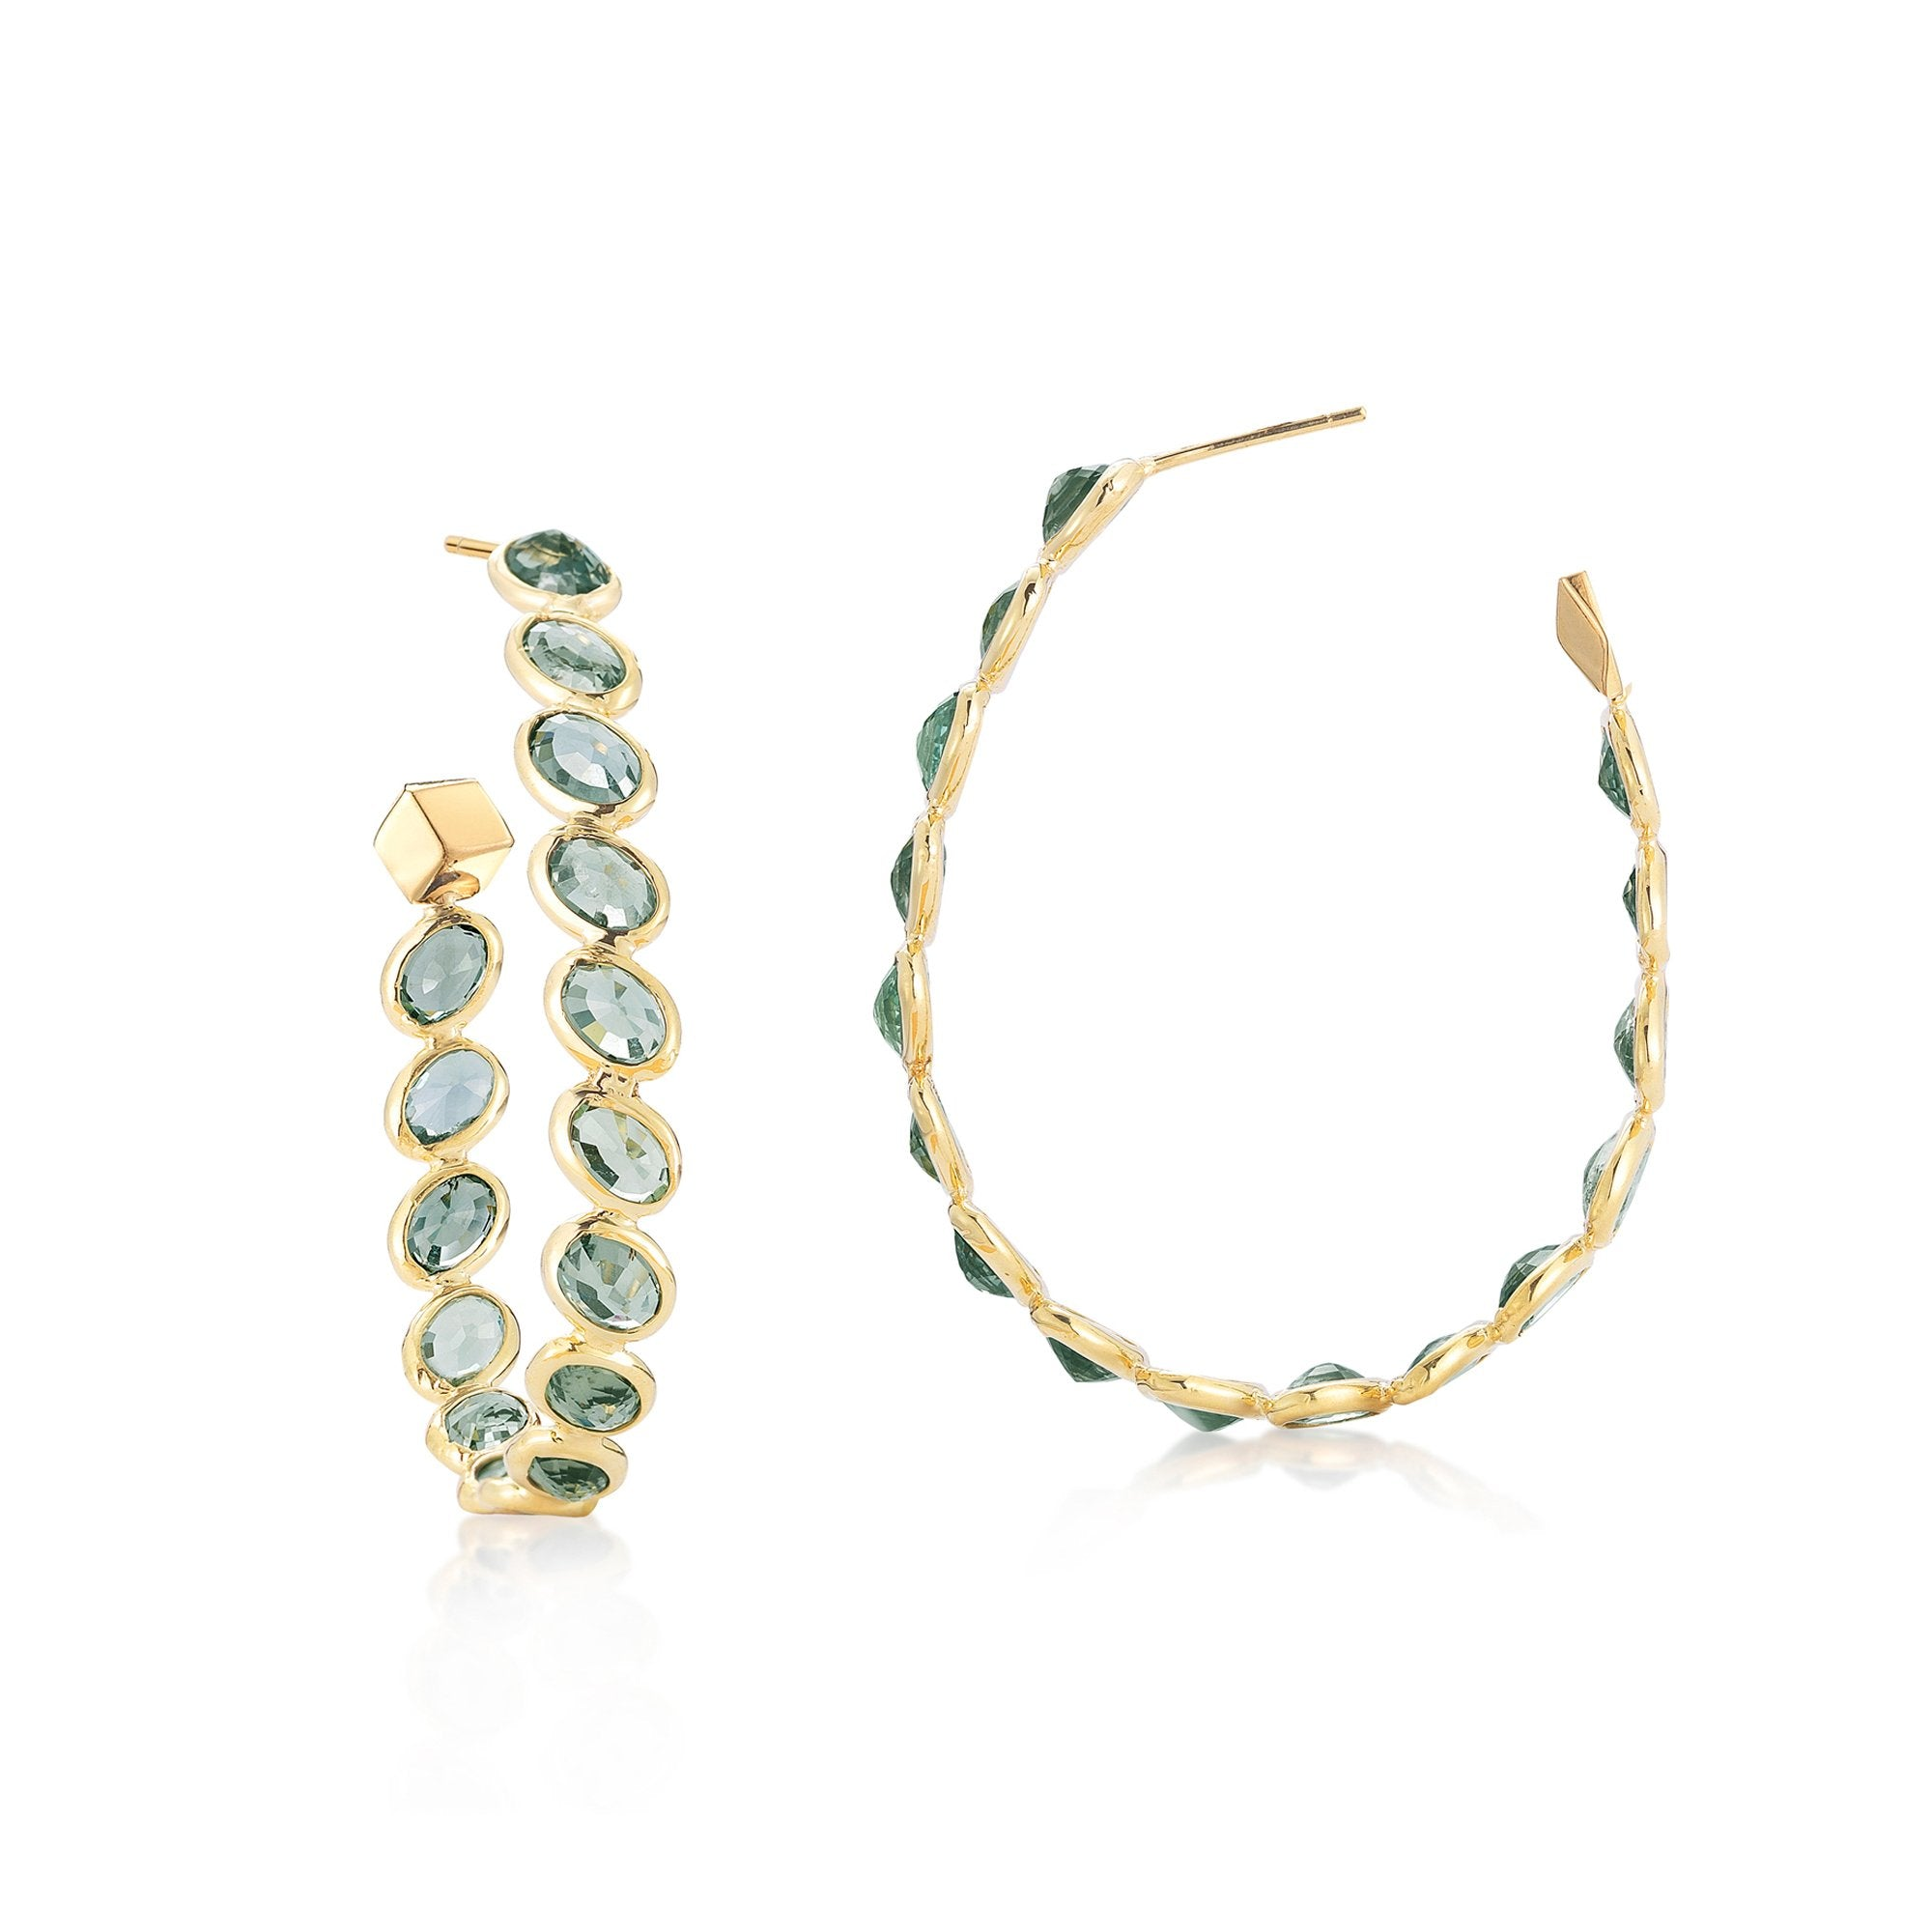 Green Sapphire 'Ombre' Hoop Earrings, Grande - Paolo Costagli - 1